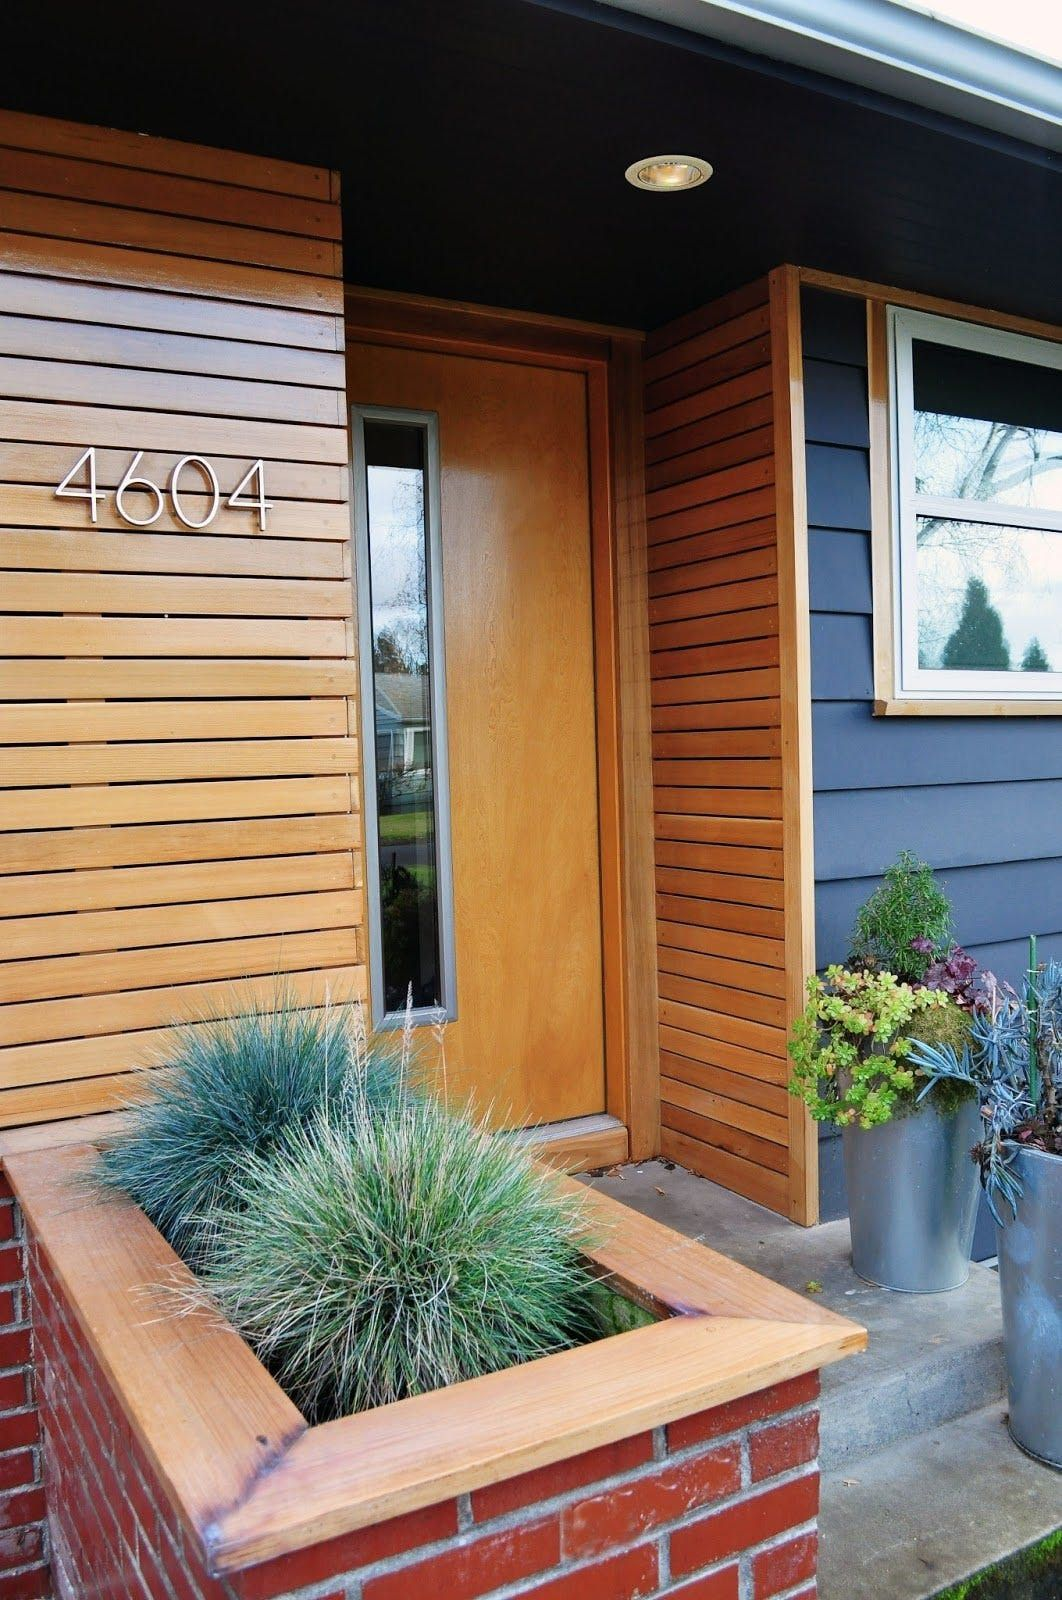 Stoop Style Ideas For Small And Beautiful Front Porches Mid Century Modern Exterior Modern Exterior House Exterior